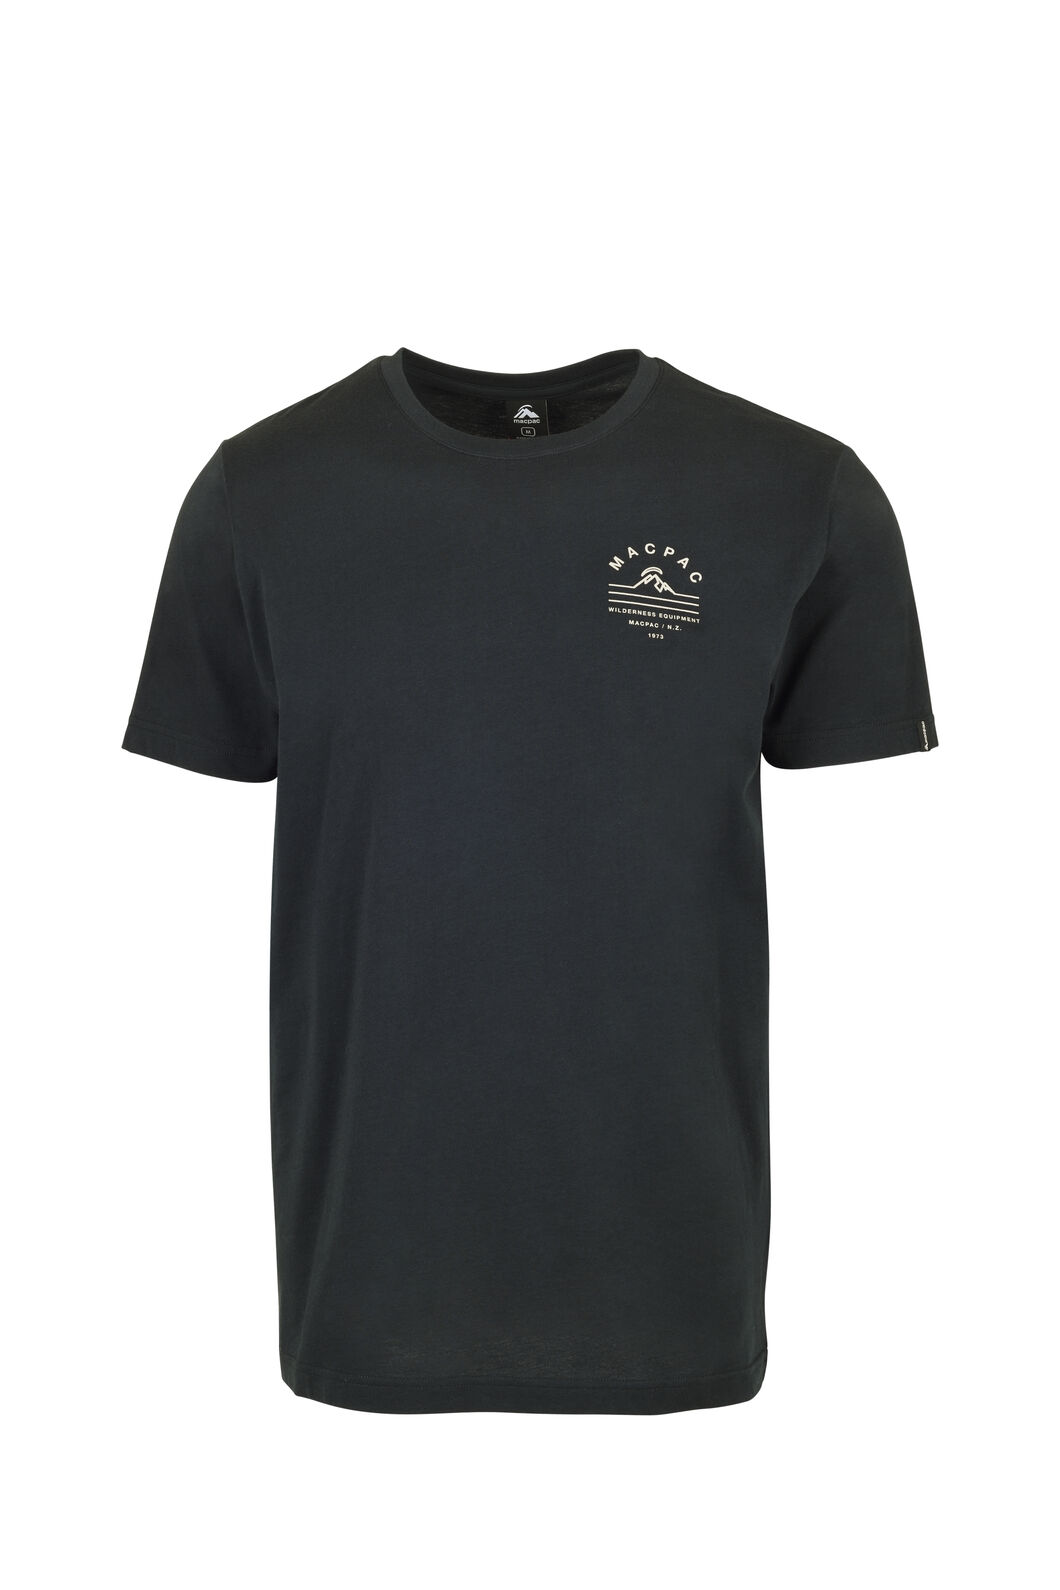 Macpac Alps Organic Tee — Men's, Black, hi-res